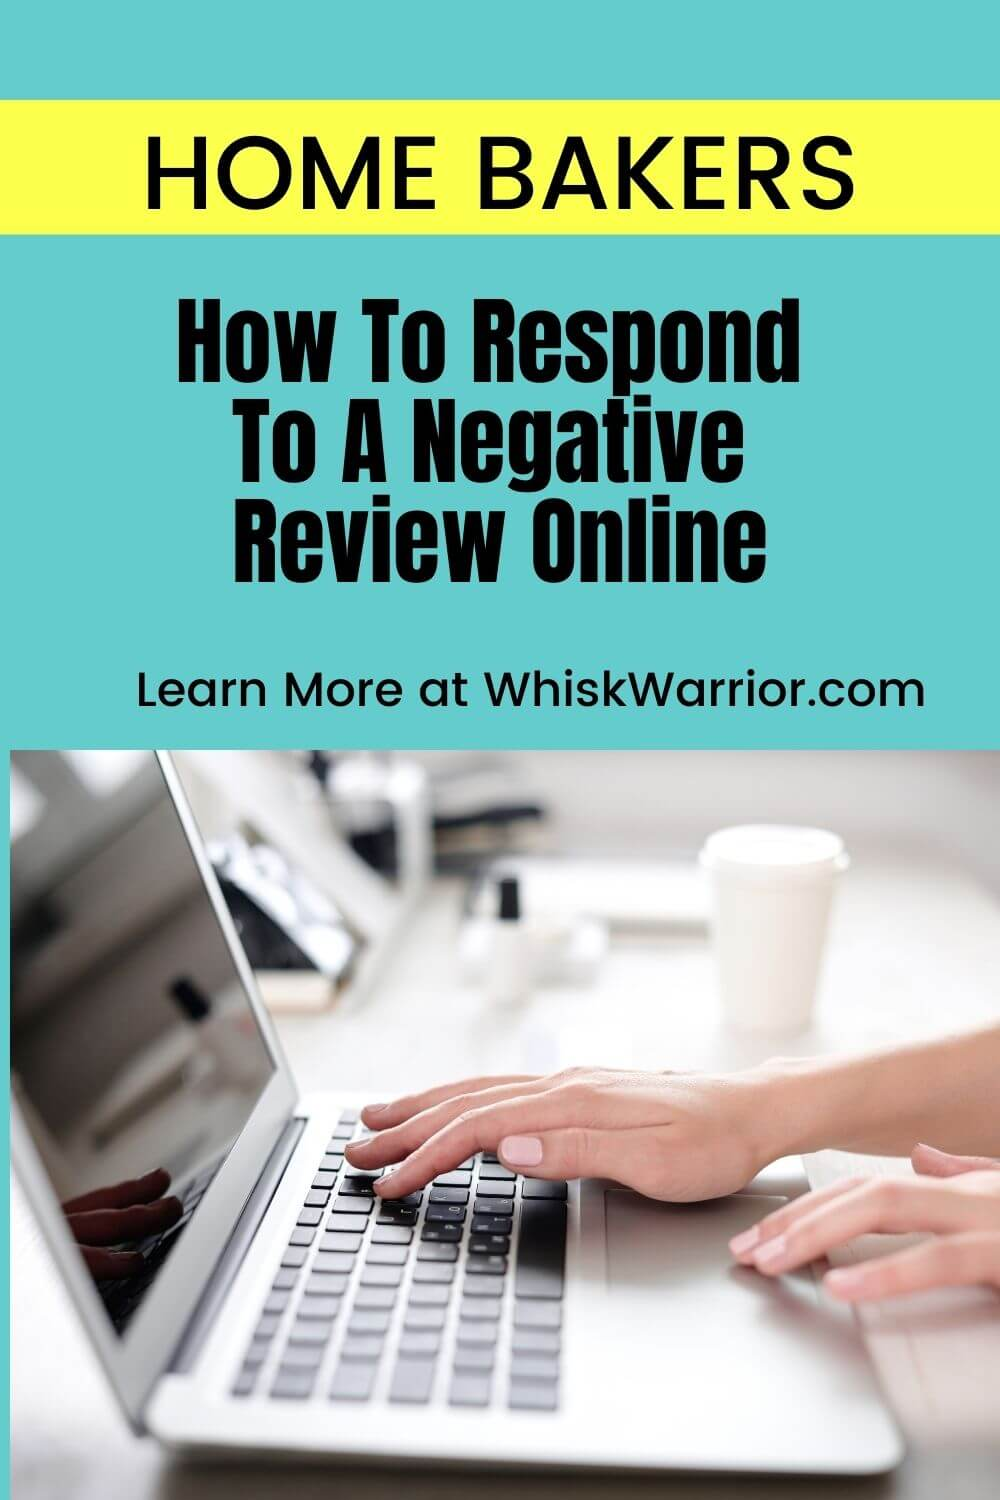 Not sure how to respond to a negative review online? Do you want to turn that negative review around? Read on to find out how and see sample scripts to reply.